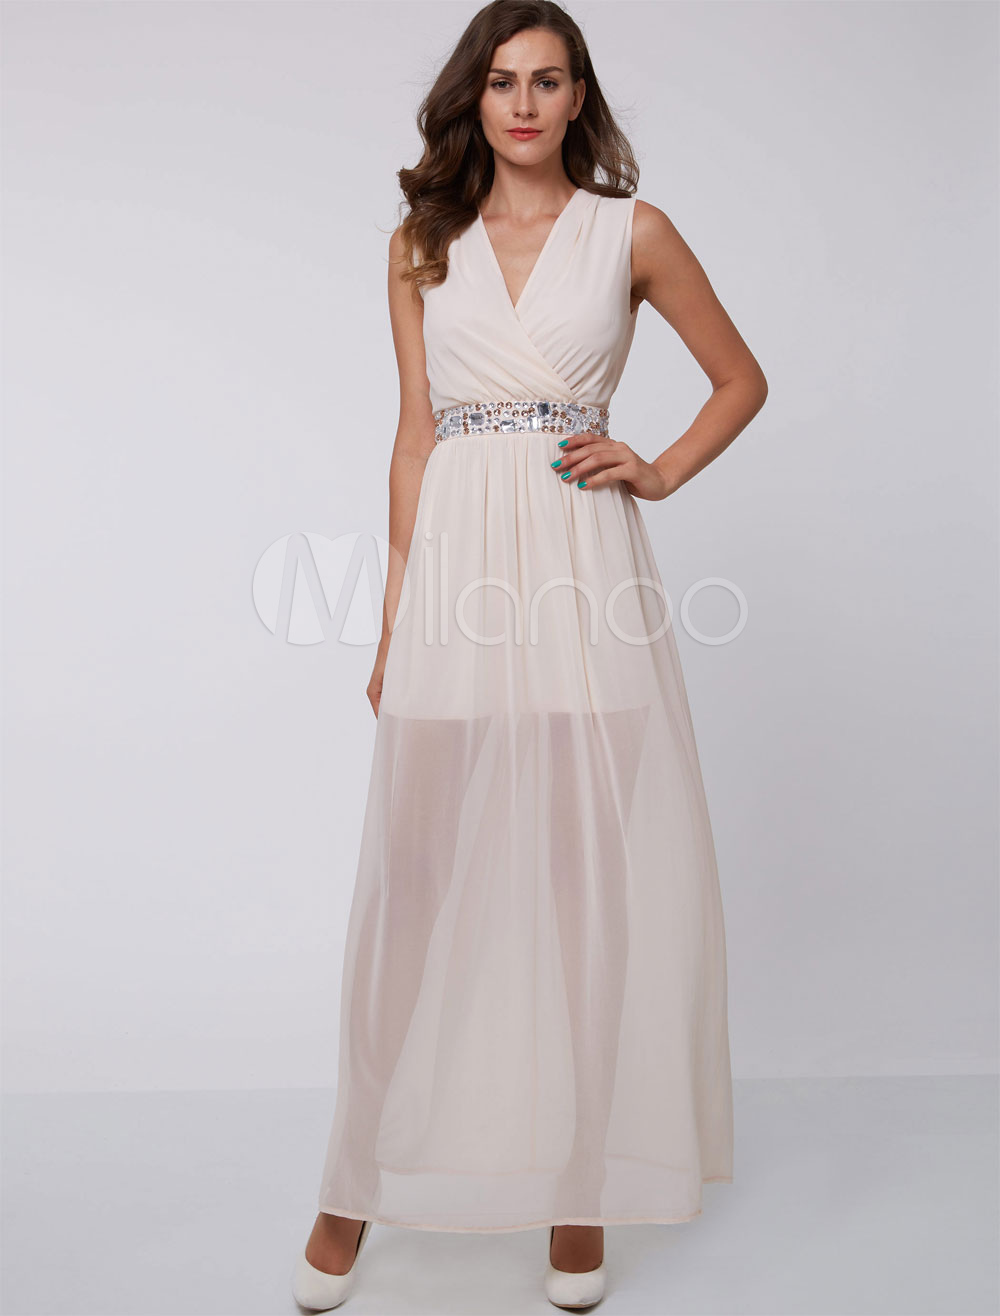 Prom Dresses Long V Neck Chiffon Ivory Beading Illusion Formal Party Dress